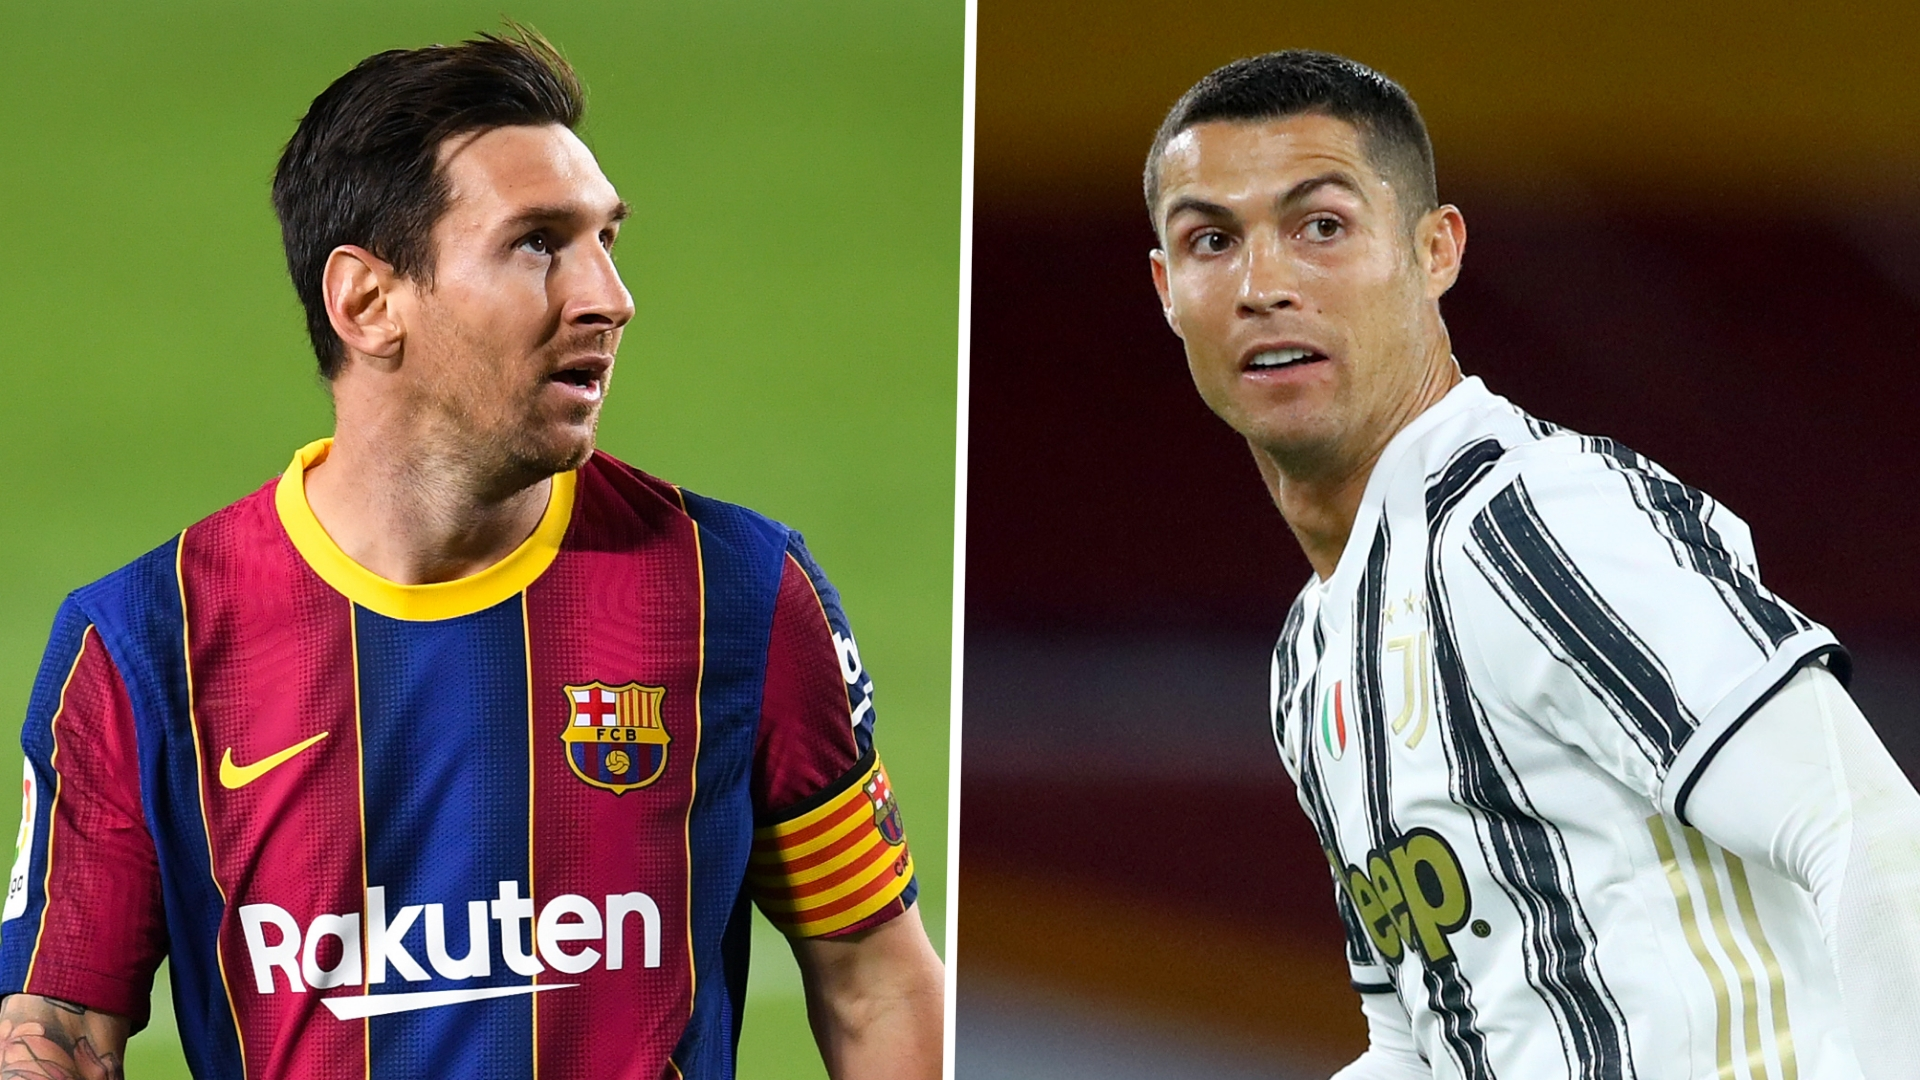 'Messi can end Ronaldo accusations in Champions League clash' – Rivaldo excited by Barcelona versus Juventus